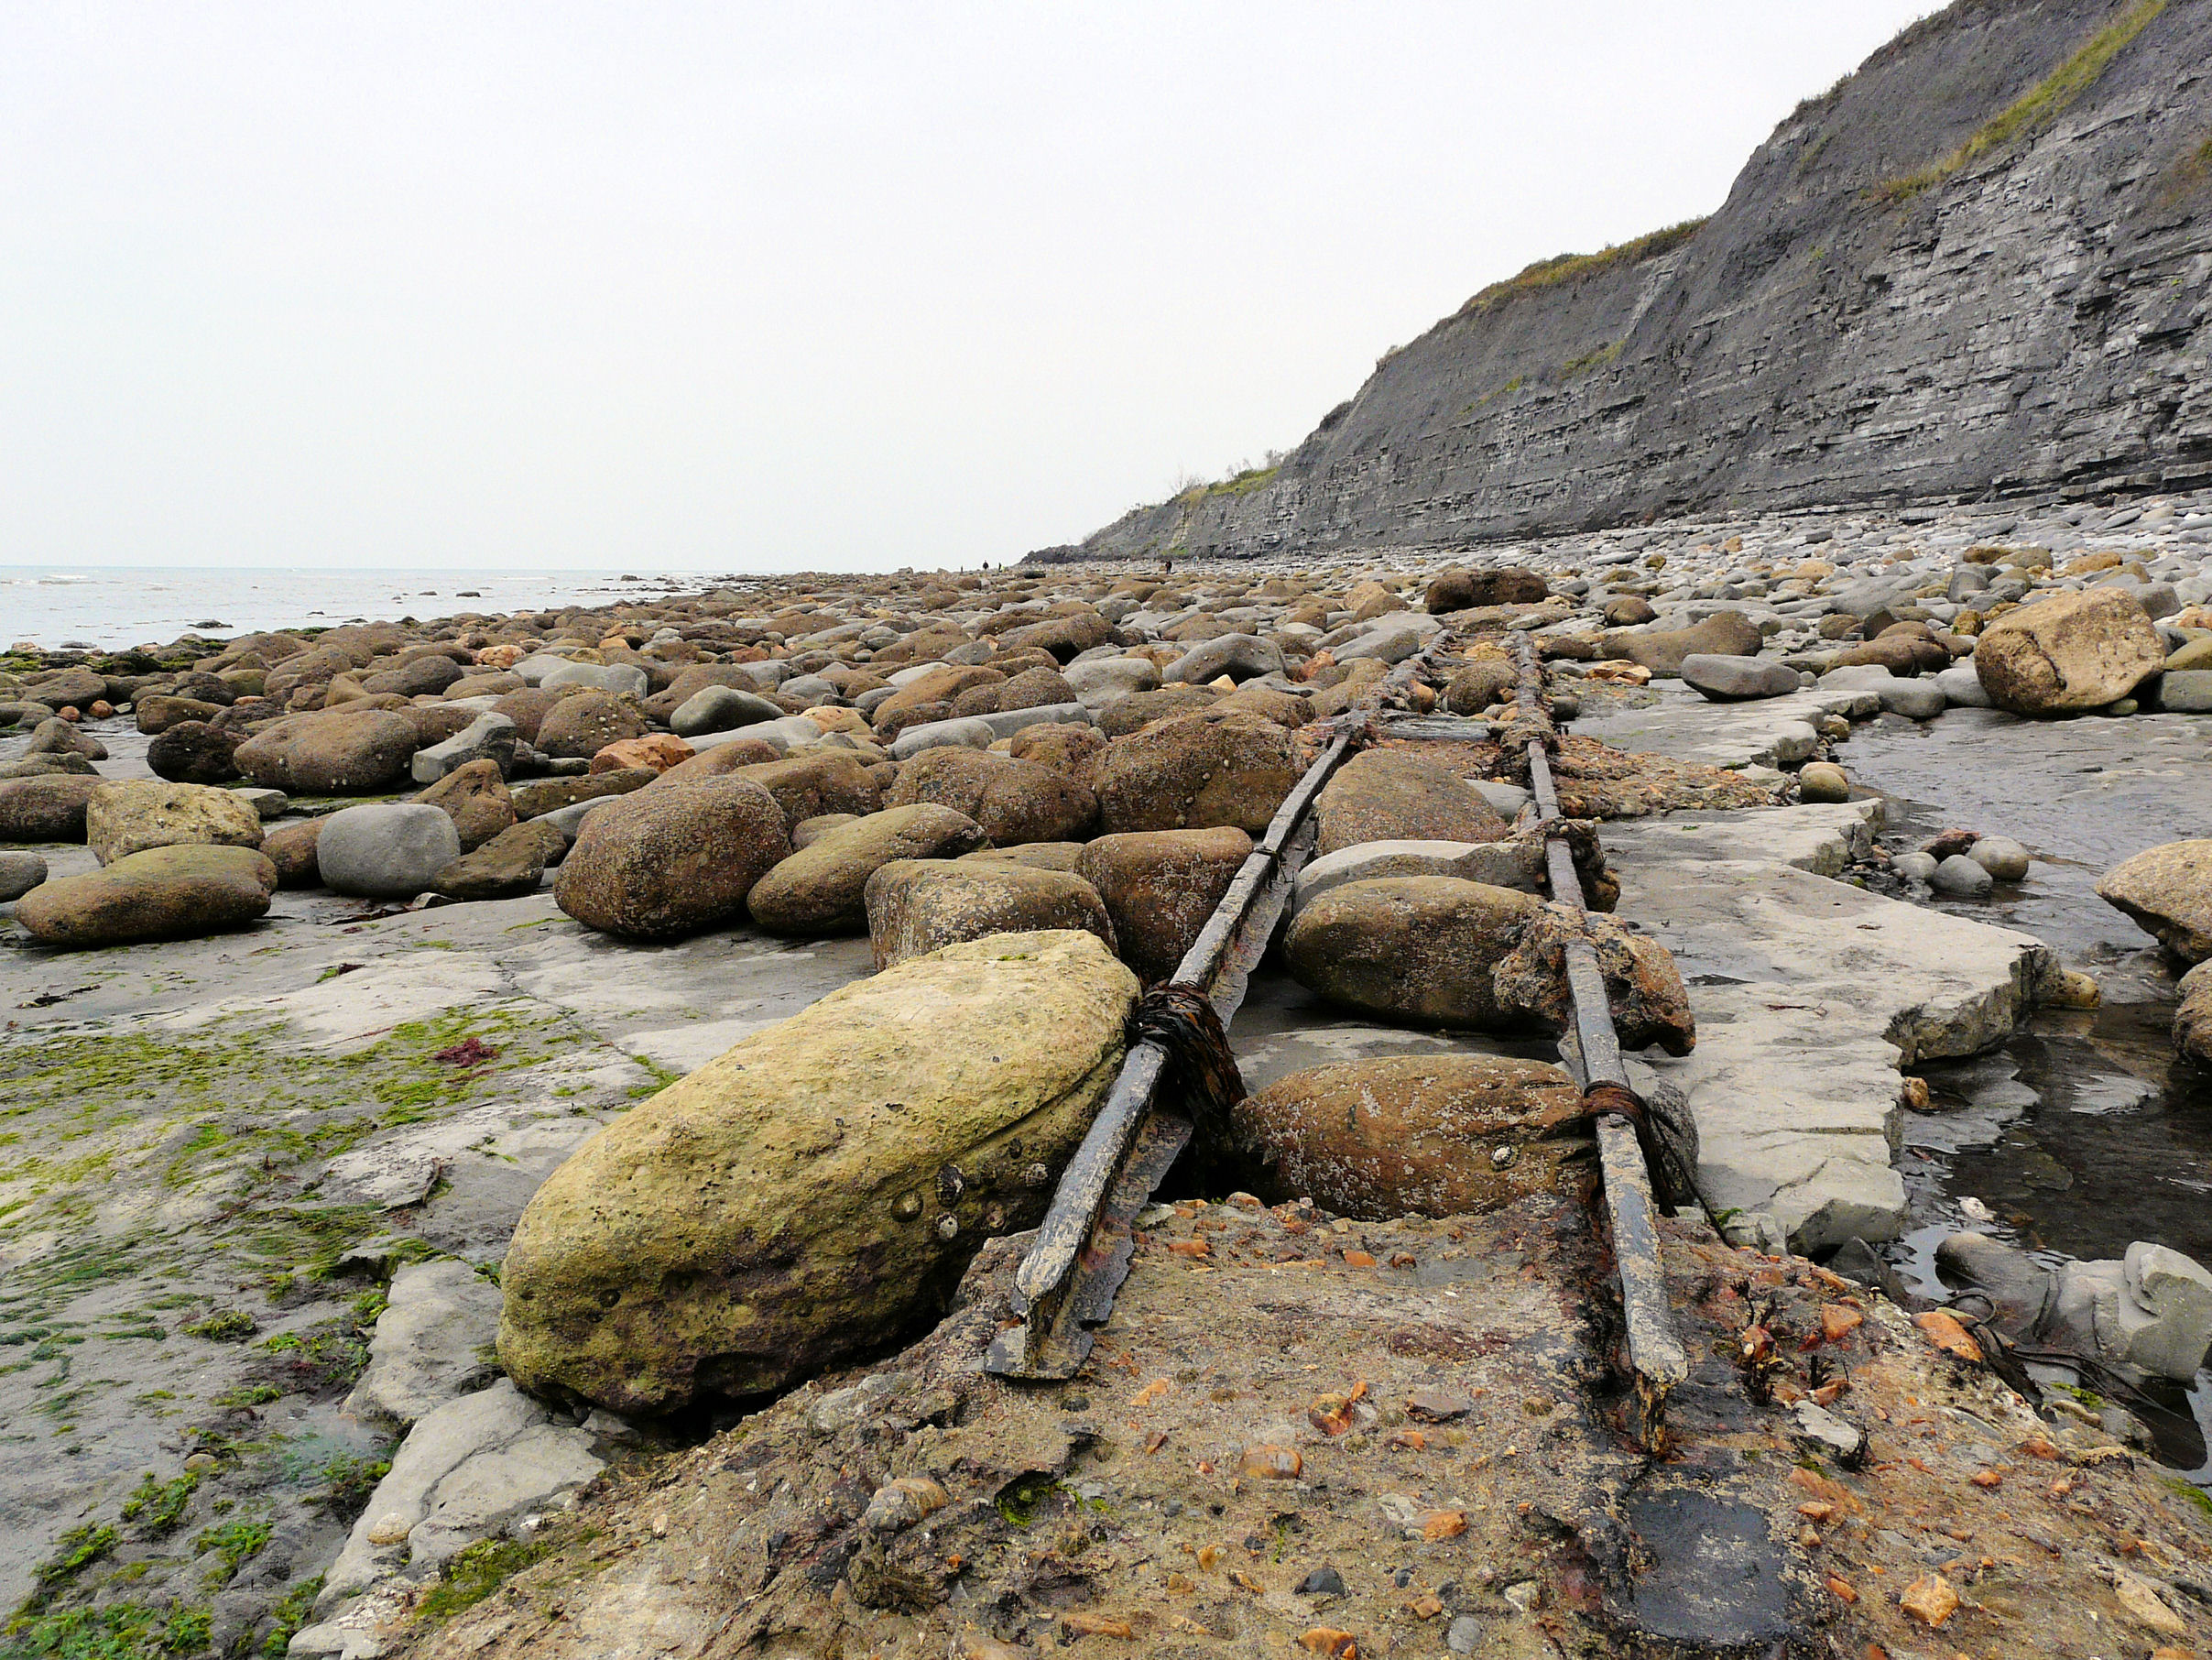 Looking westwards at old Victorian rail track and concrete seatings on Monmouth Beach, Lyme Regis, Dorset - part of the Jurassic Coast